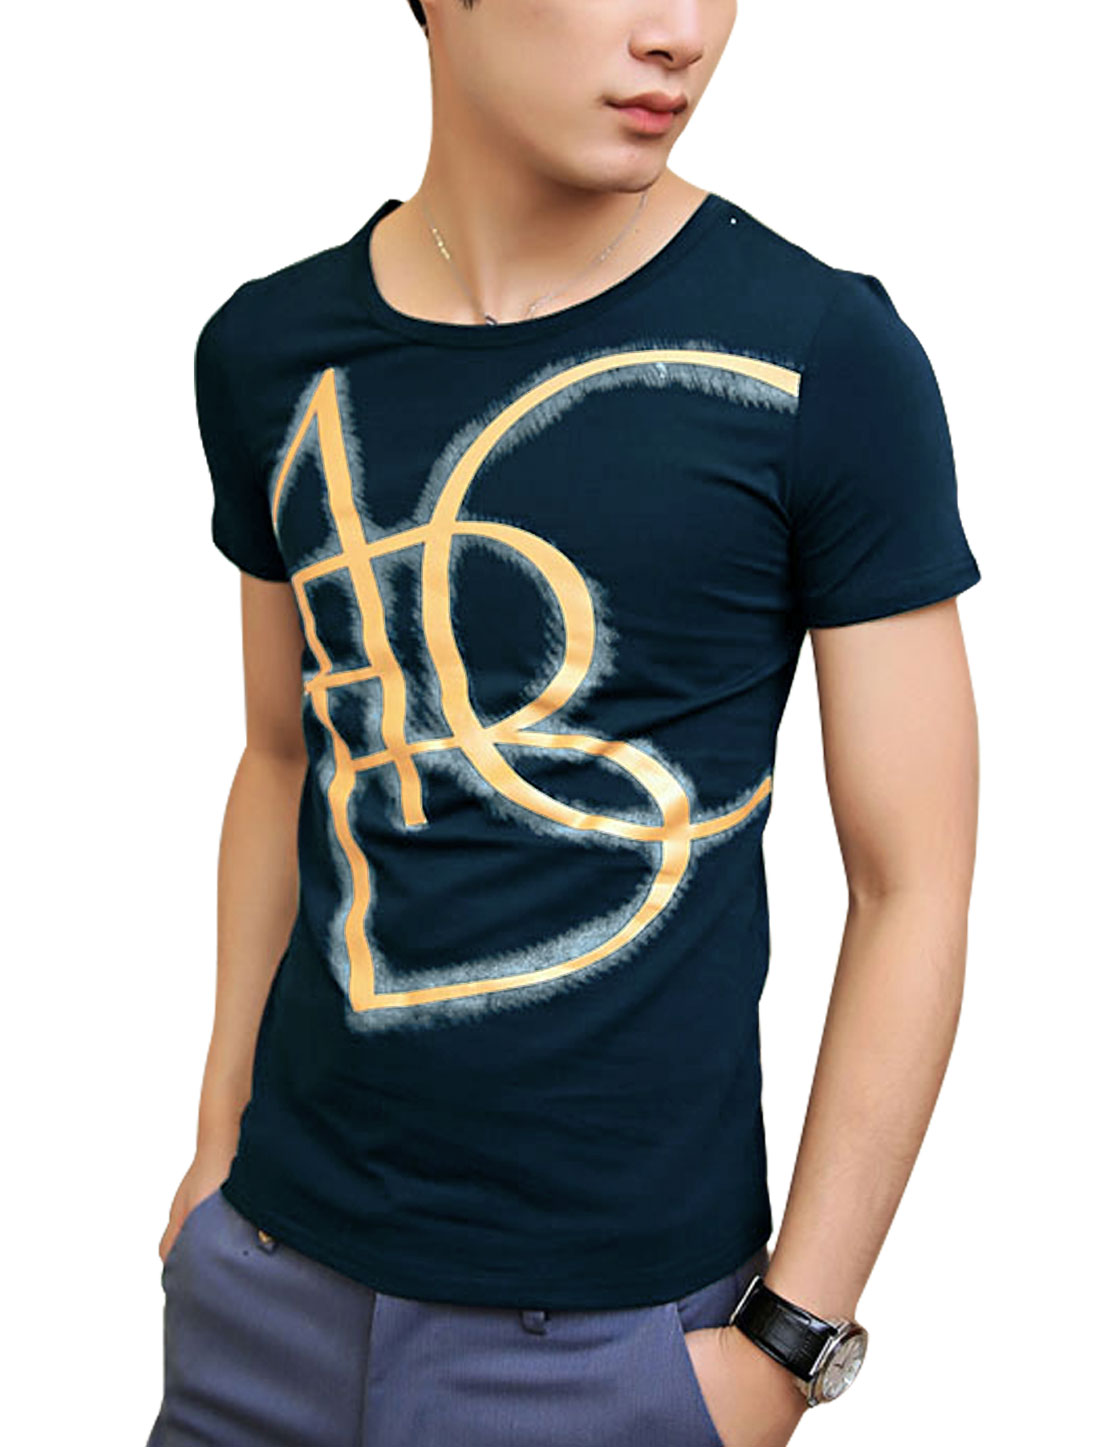 Men Cozy Fit NEW Short Sleeve Letters Printed Tee Navy Blue S